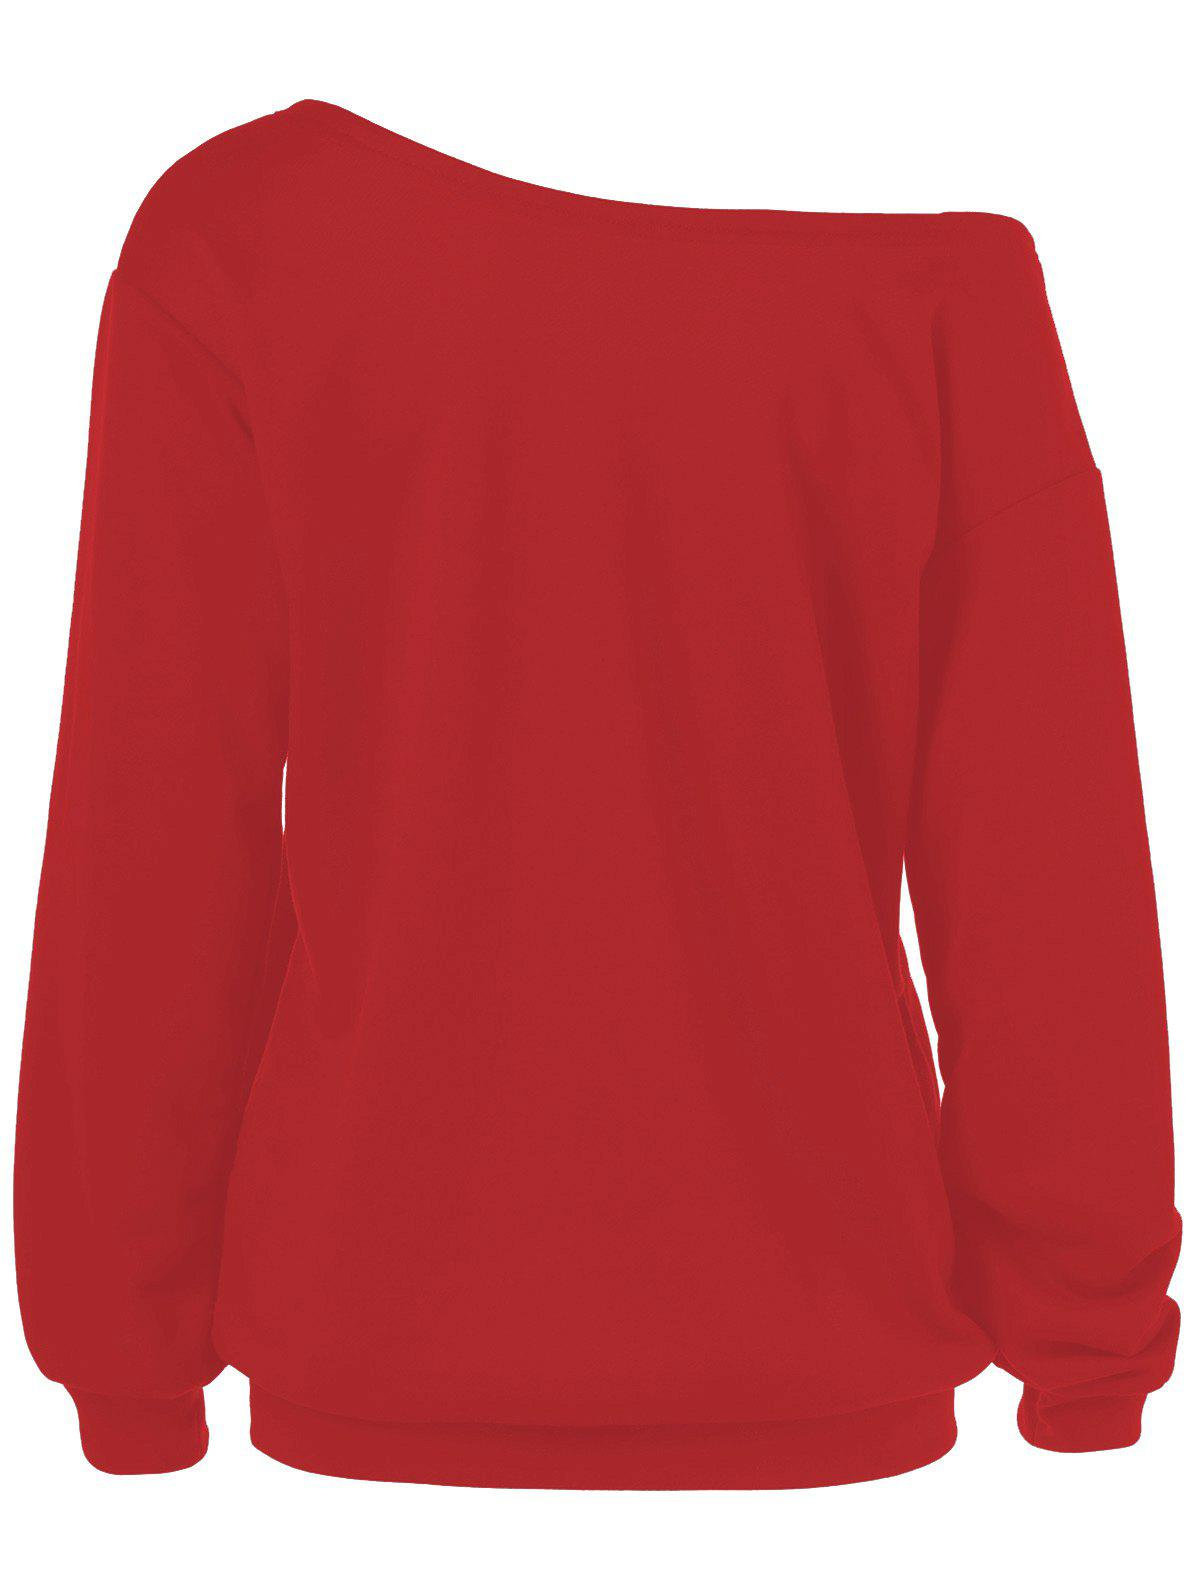 Sweat-shirt Grande Taille Merry Christmas et Père Noël - Rouge 2XL